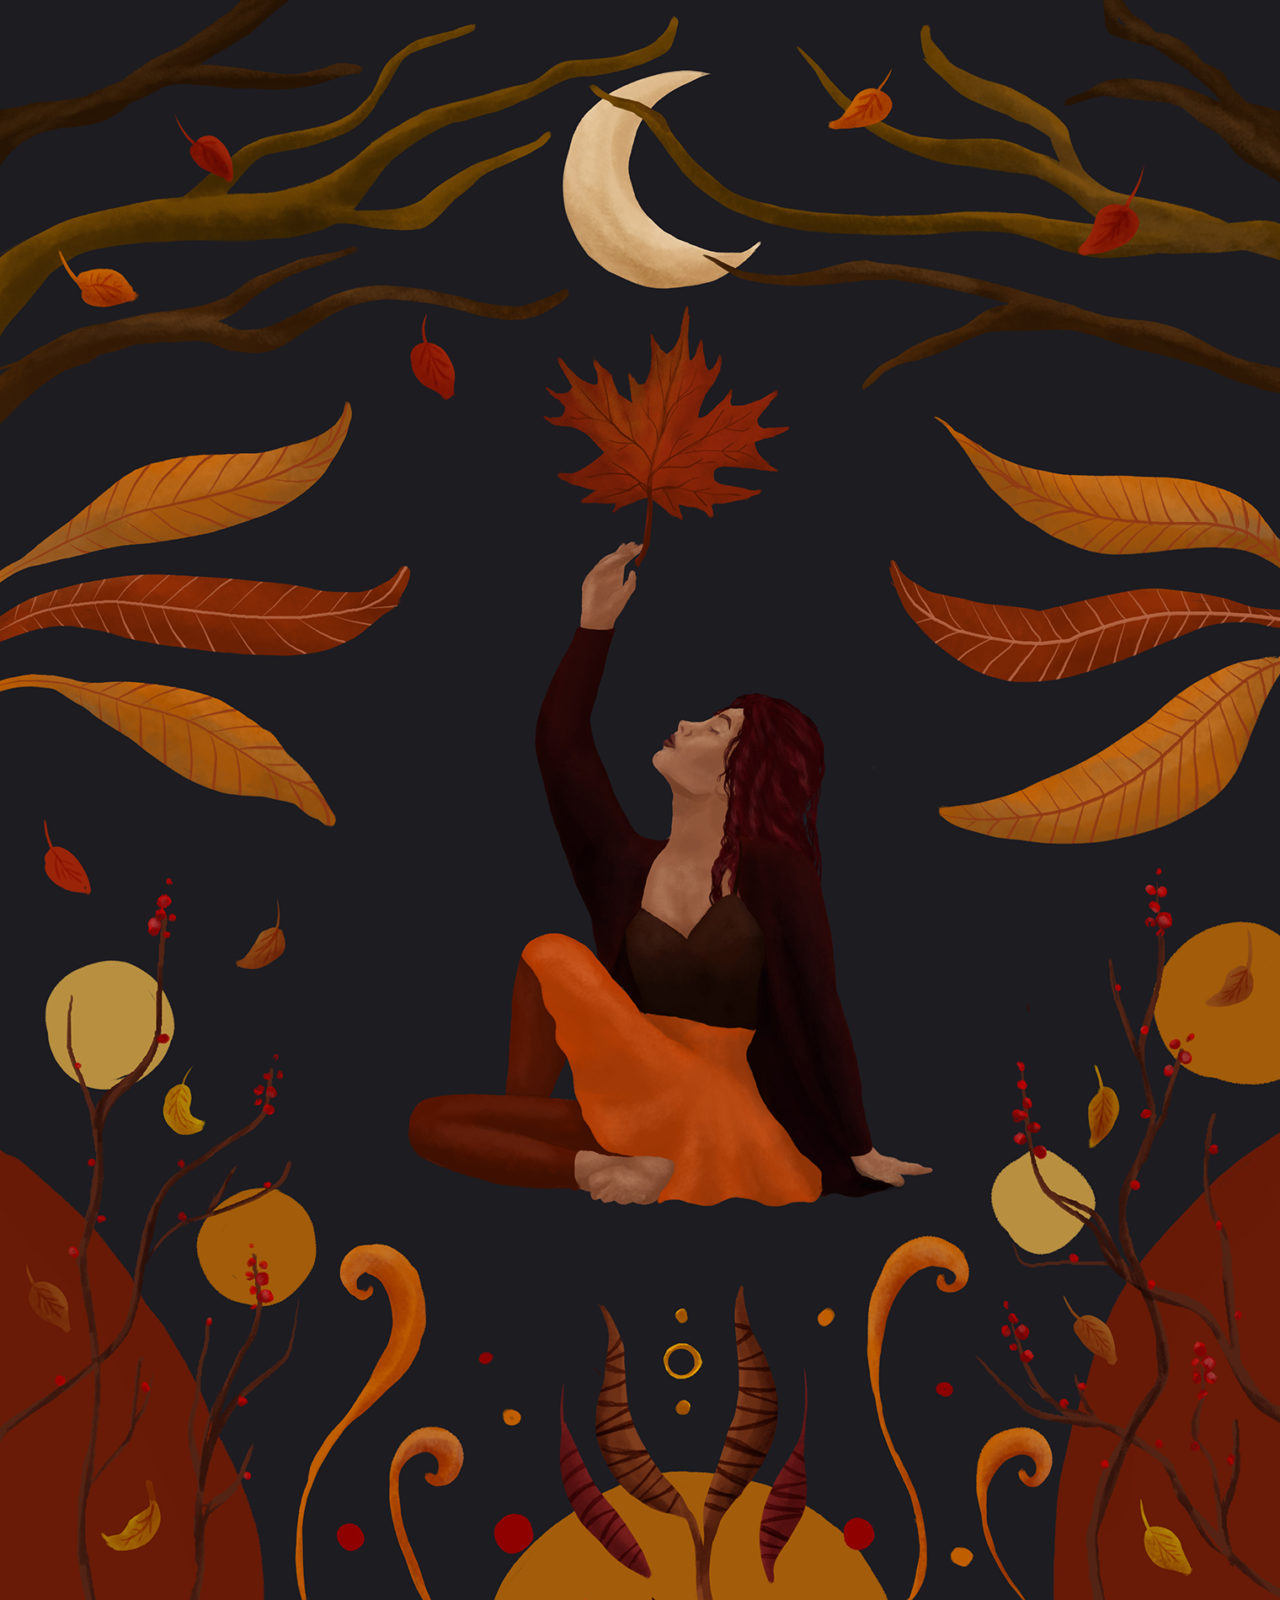 Yoga illustration to celebrate the seasons. Autumn shows warm colors, falling leaves and a woman in a yoga pose reaching for the moon.